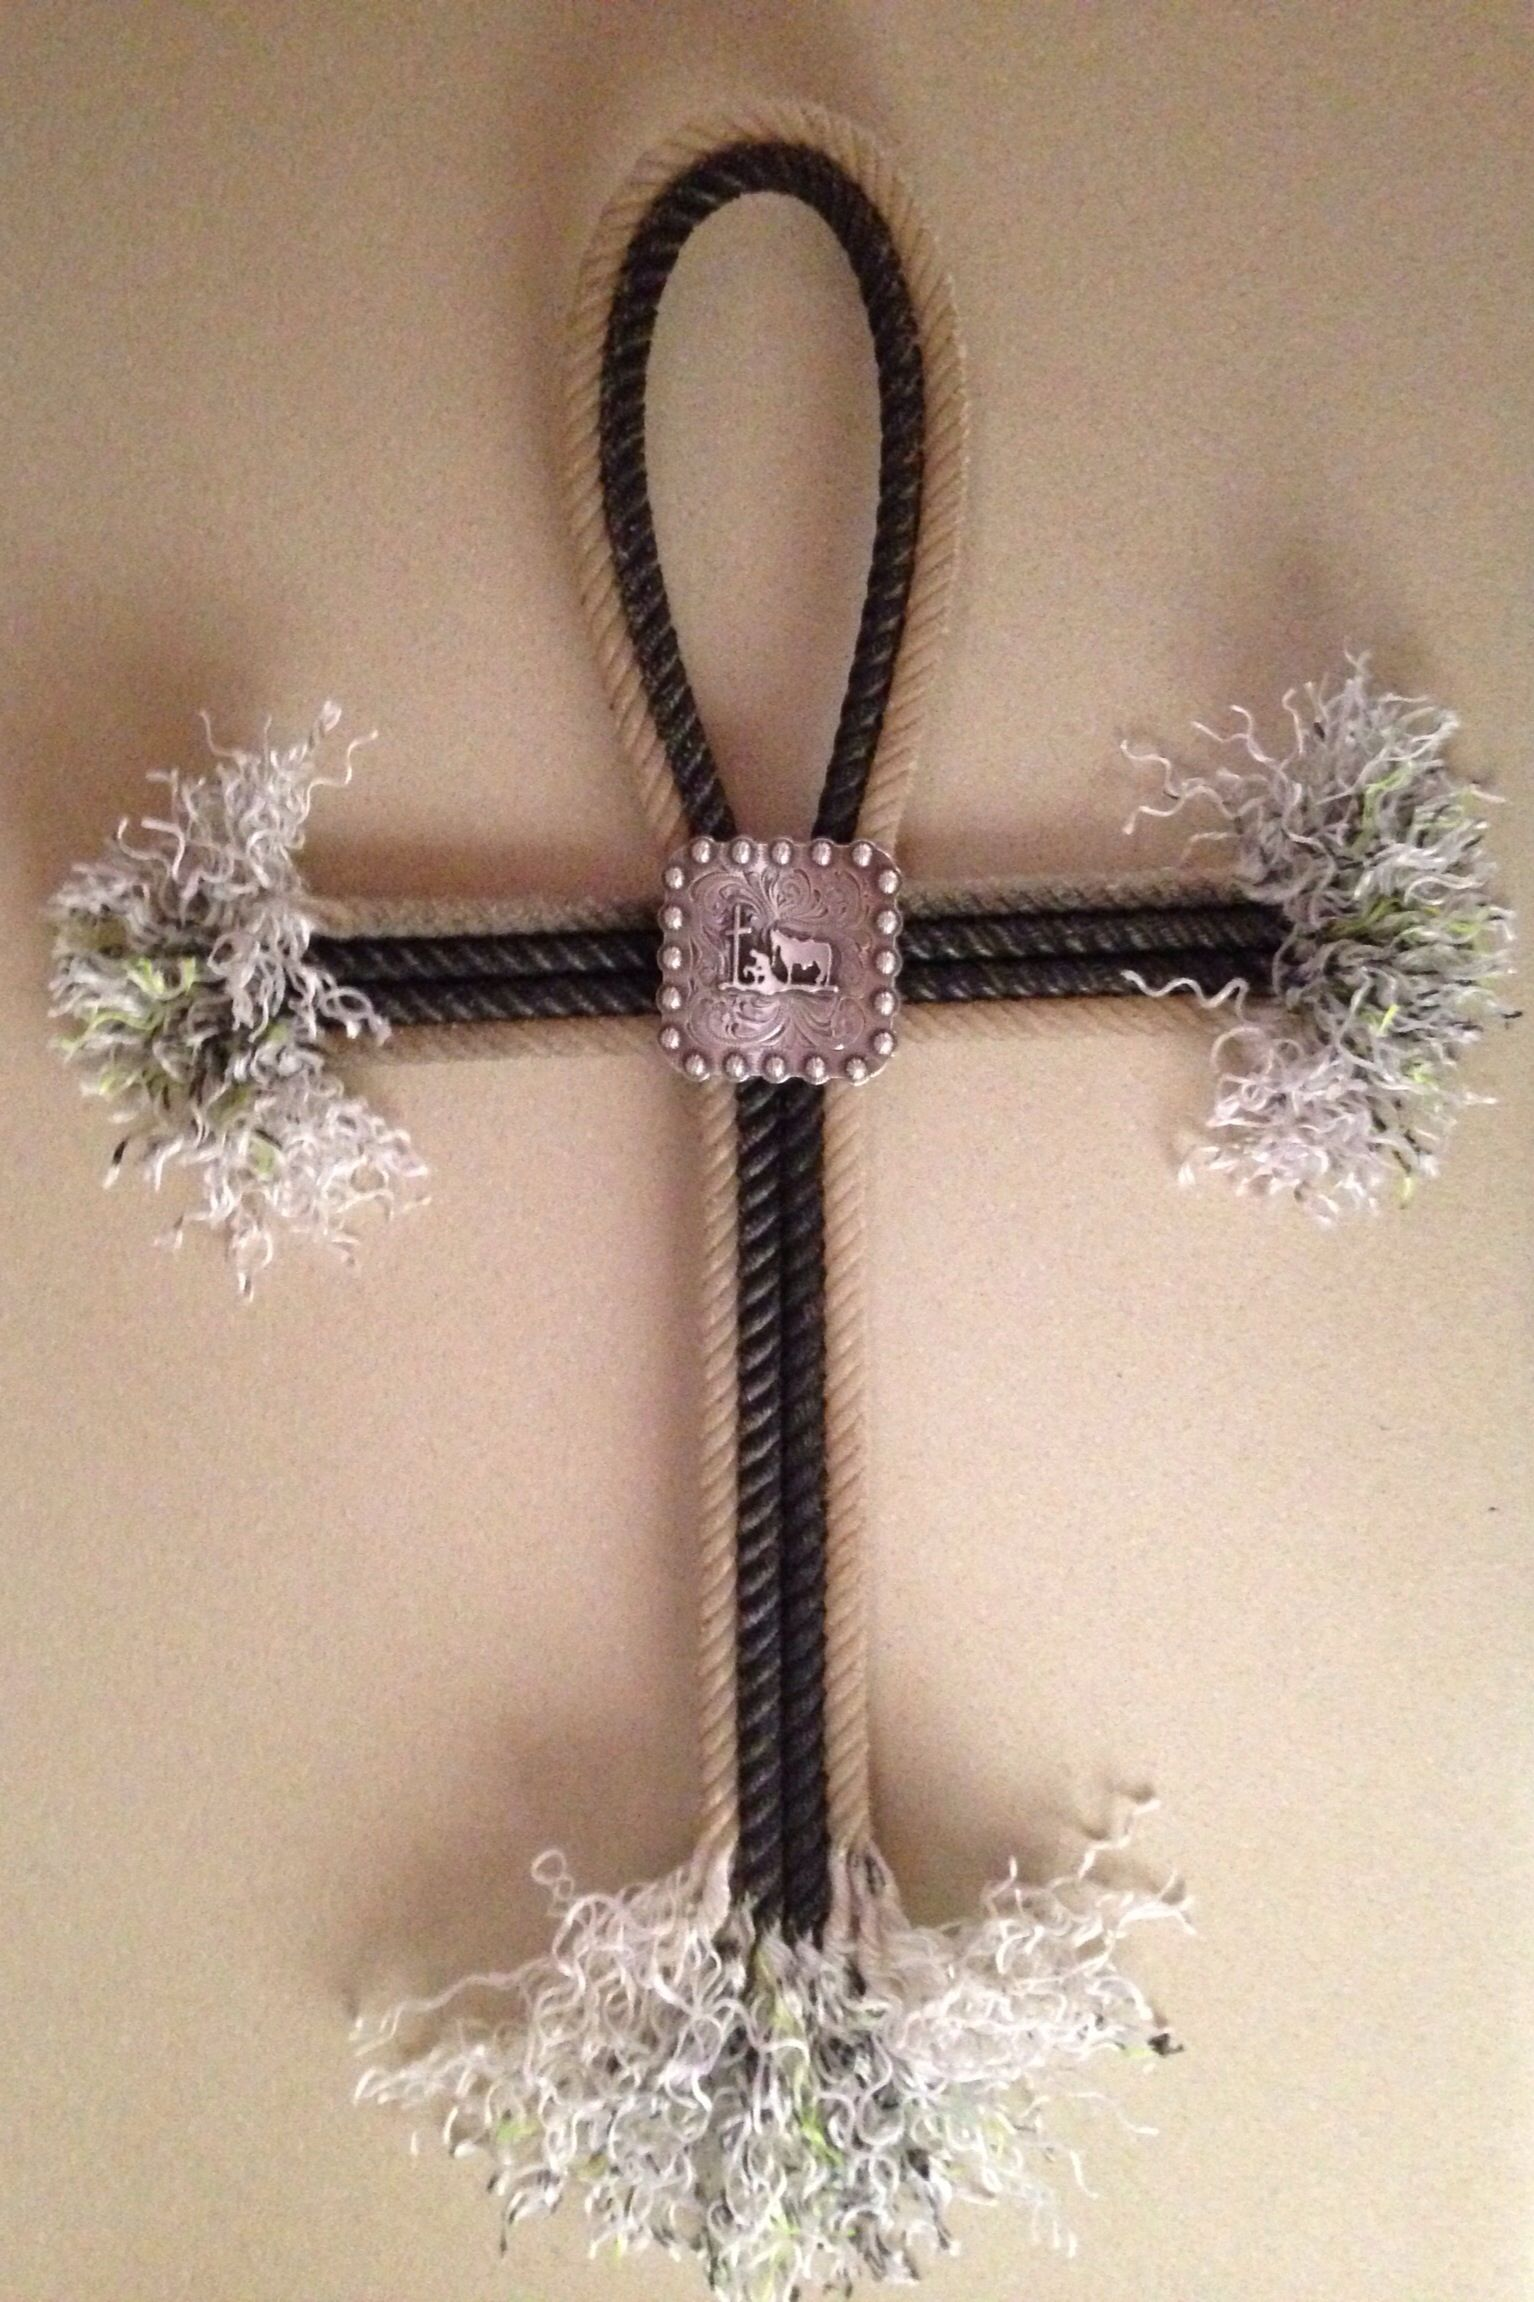 sold! but can make similar hand crafted lariat rope cross wall